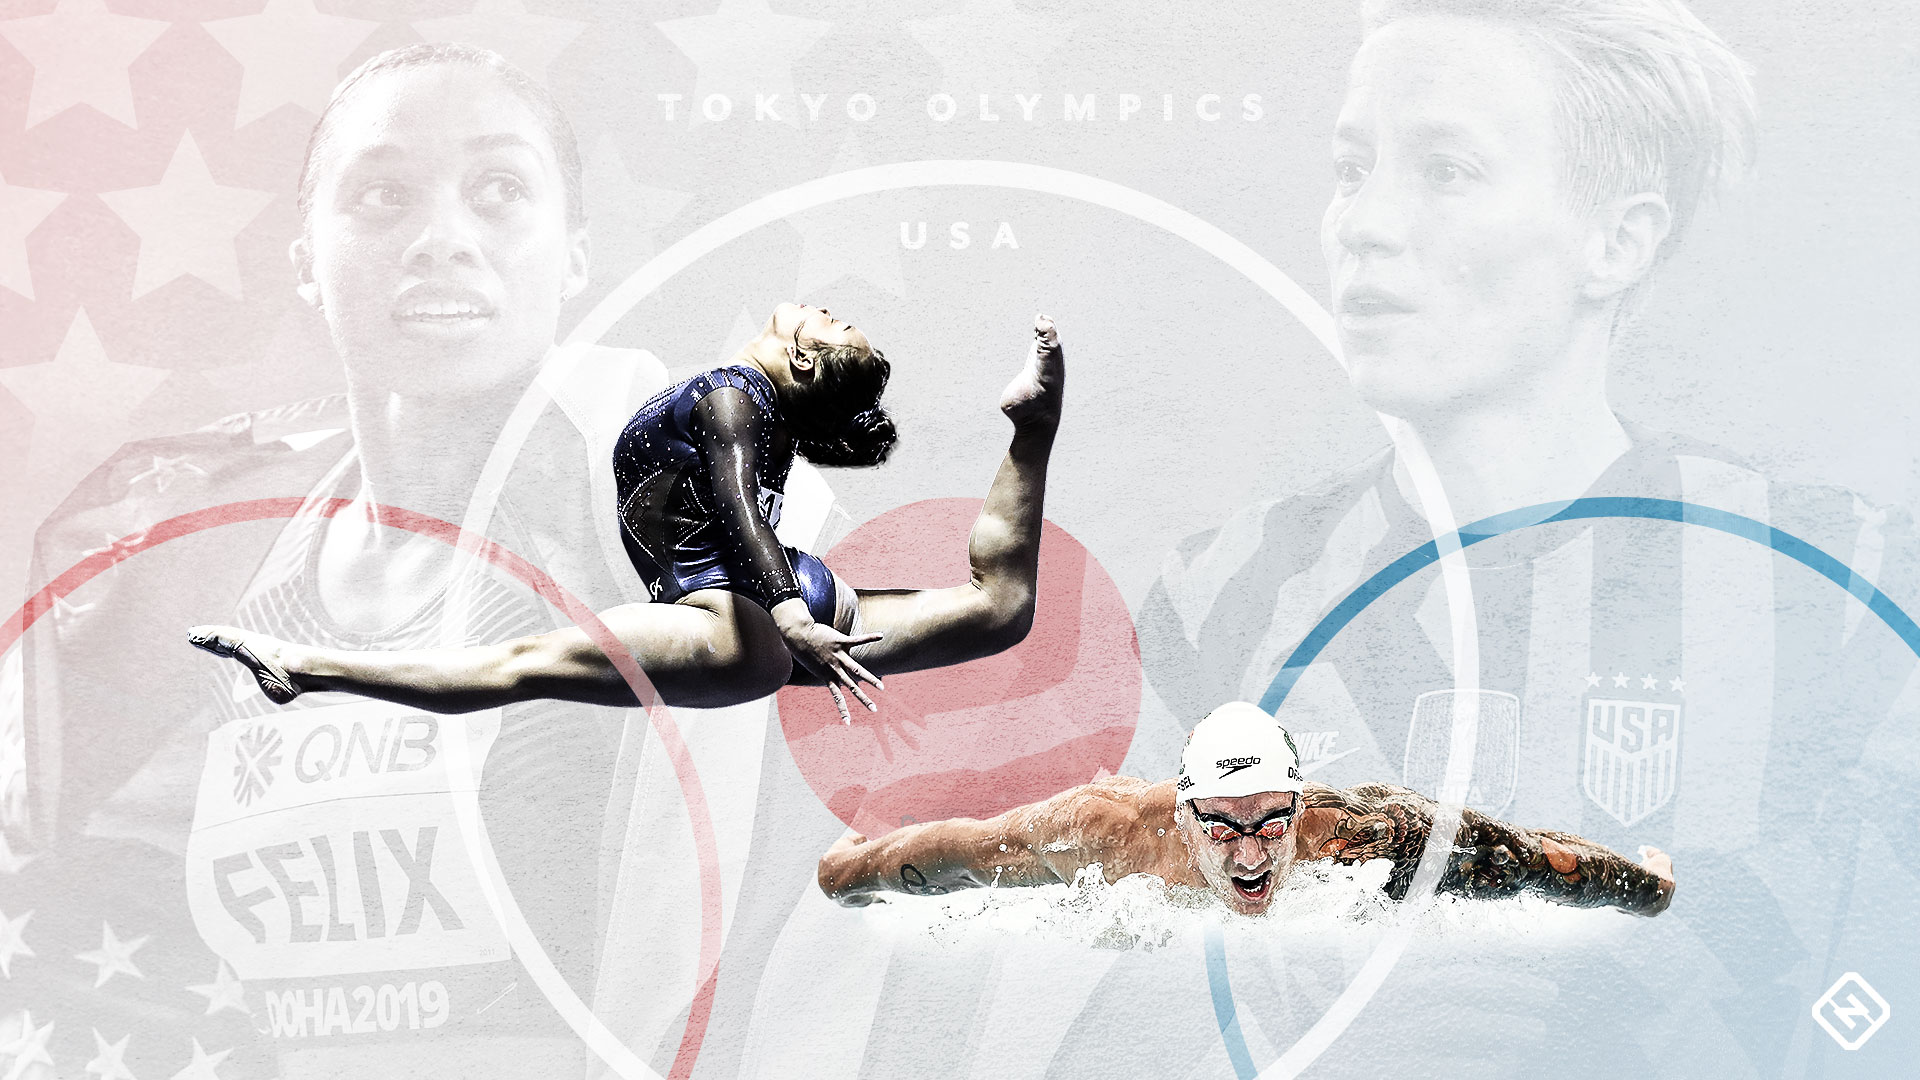 USA Olympics schedule today: Day-by-day TV coverage to watch Team USA at 2021 Tokyo Games